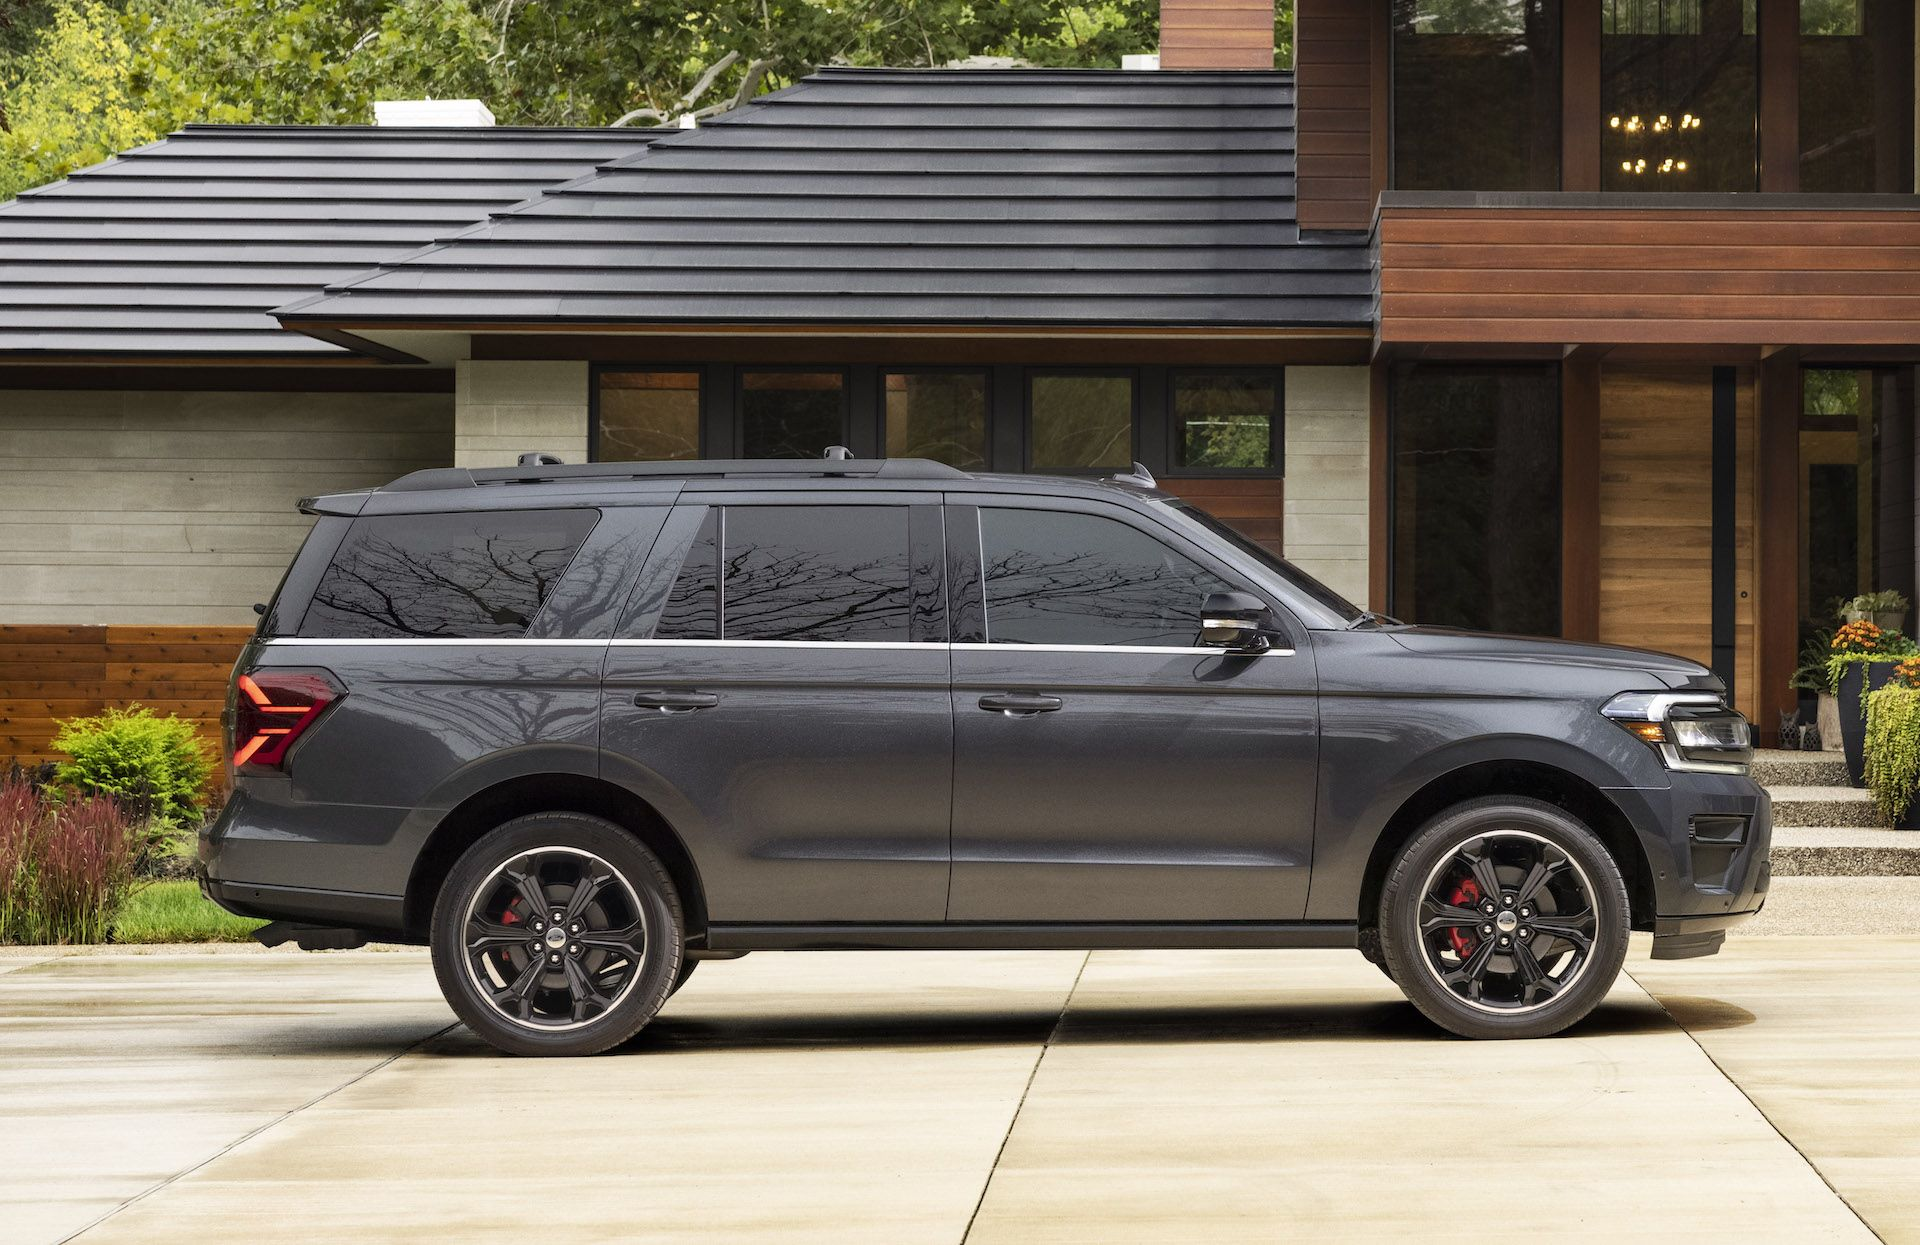 2022-Ford-Expedition-Stealth-00009-1